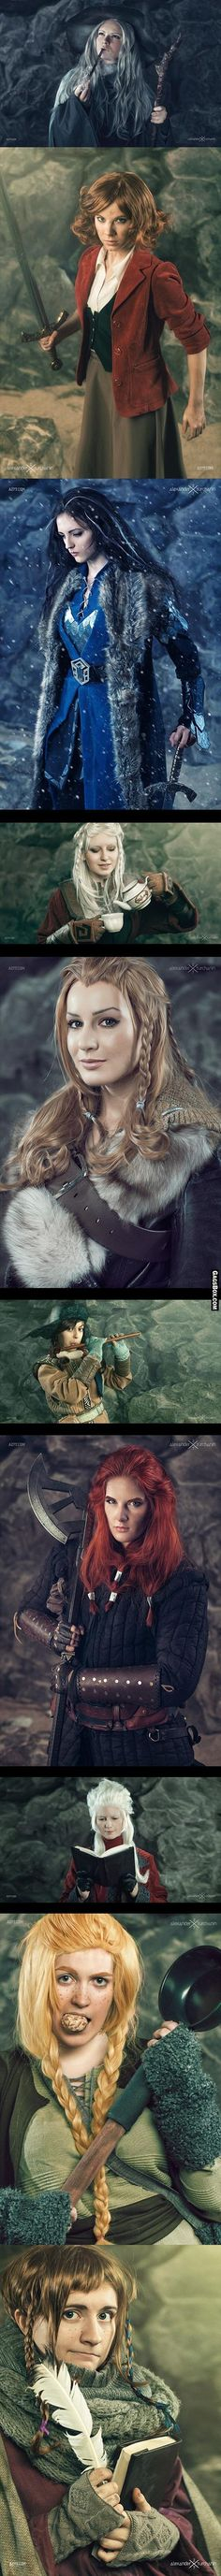 Women Cosplay As Male Characters From The Hobbit - #funny, #lol, #fun, #humor, #comics, #meme, #gag, #lolpics, #Funnypics,